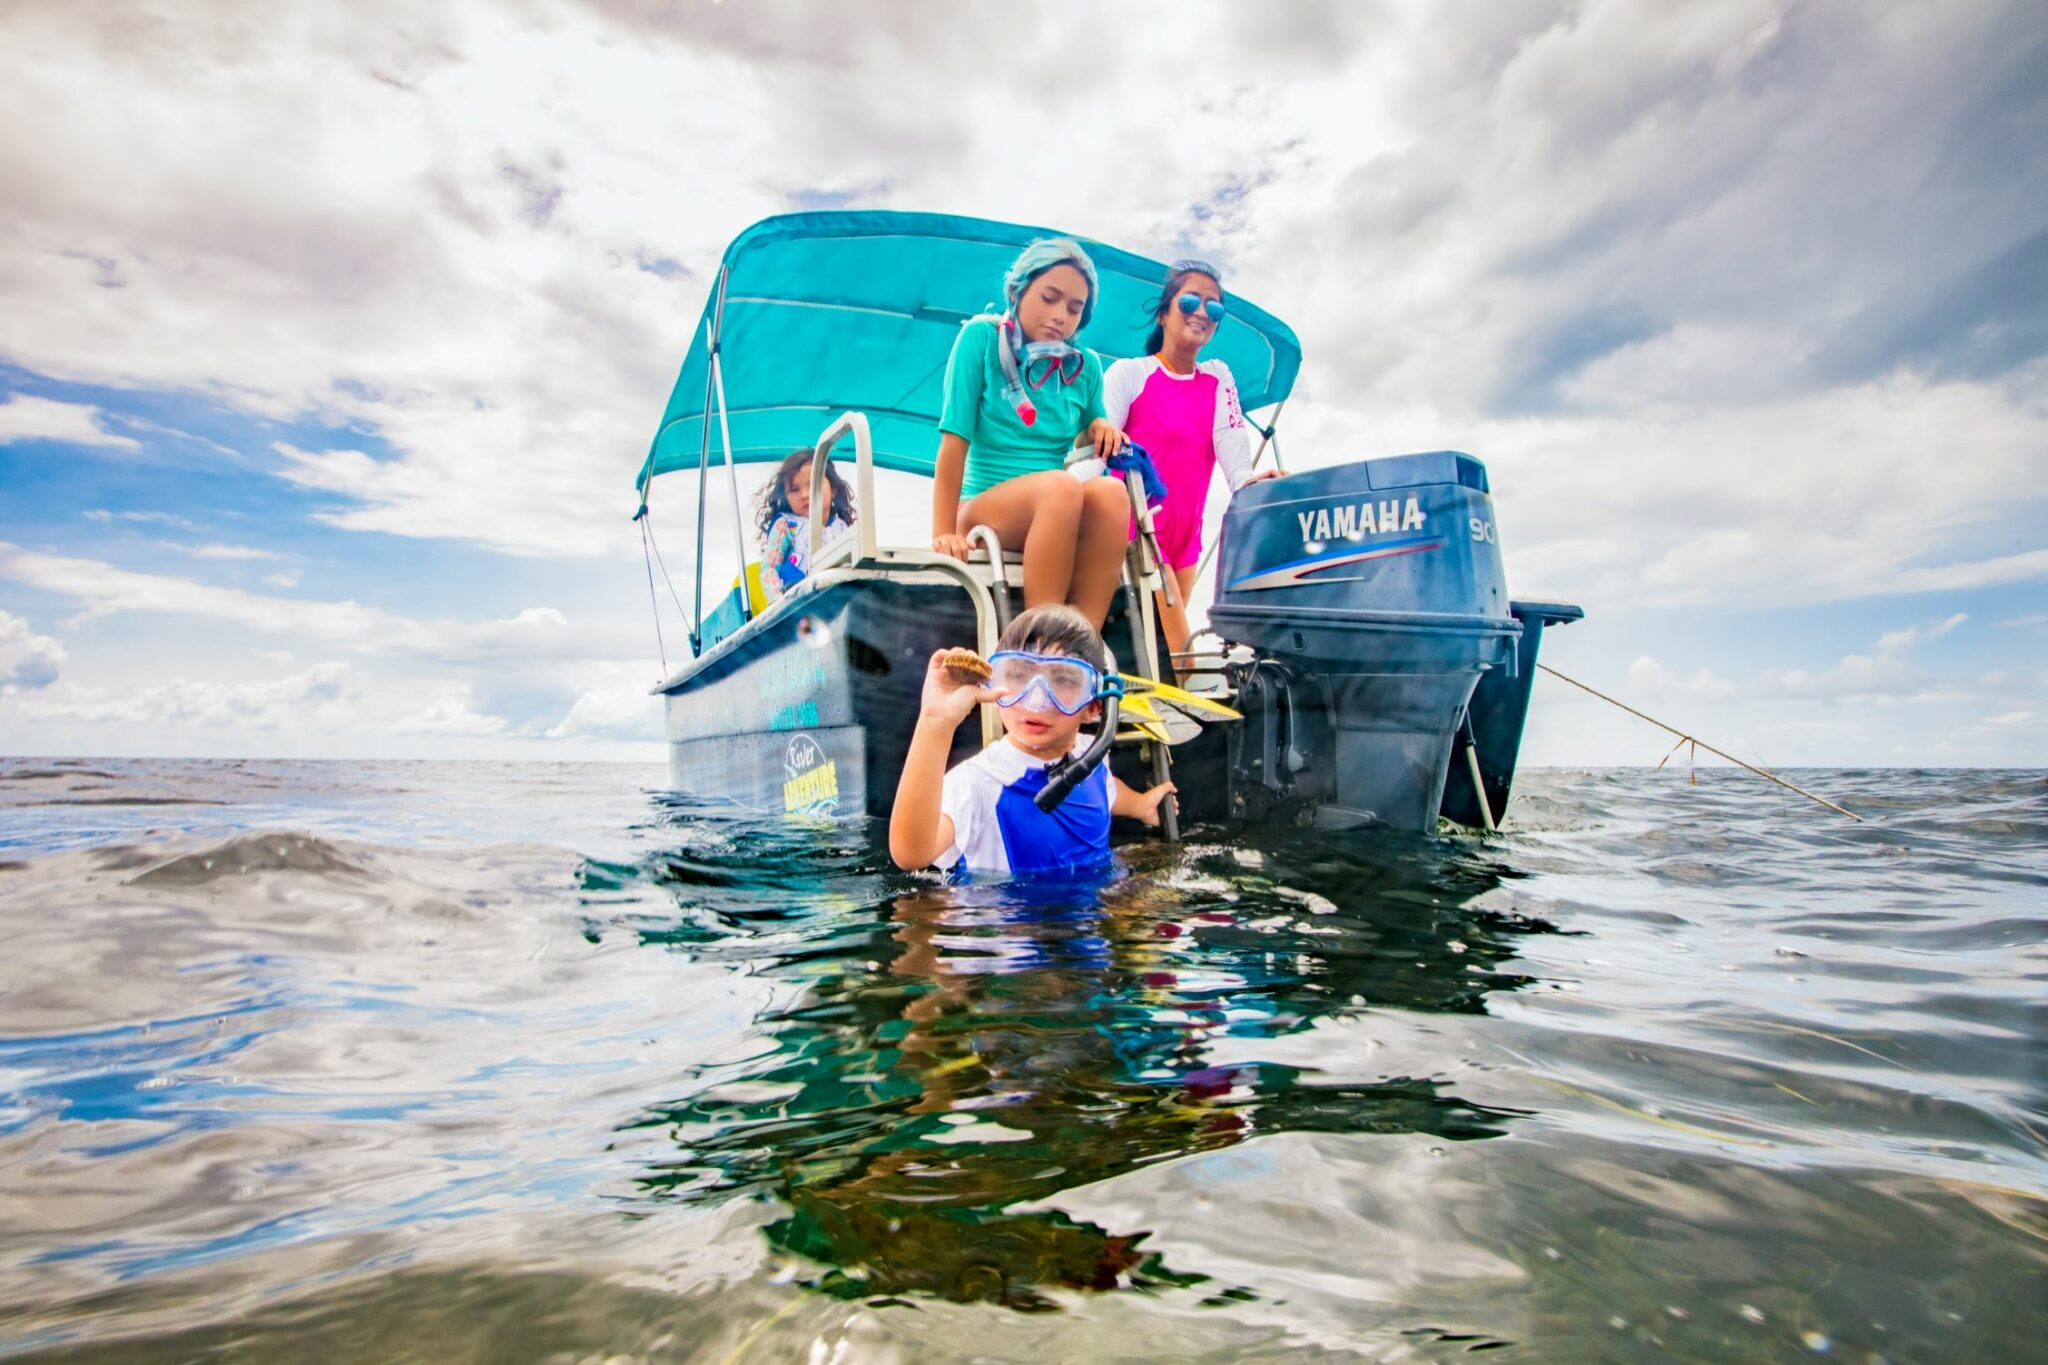 Family on a boat scalloping together